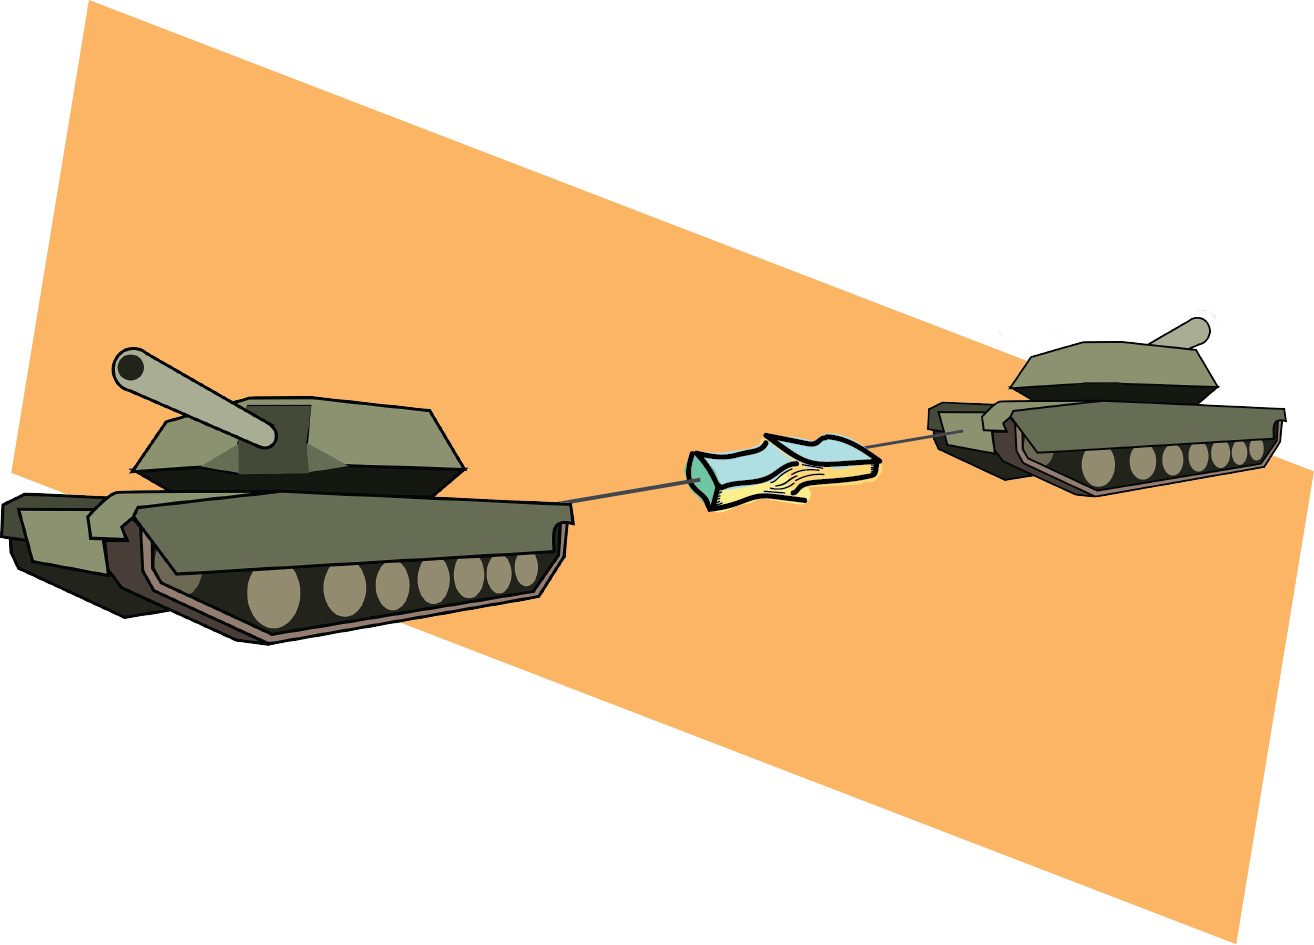 Why it Takes Tanks to Separate Two Phone Books